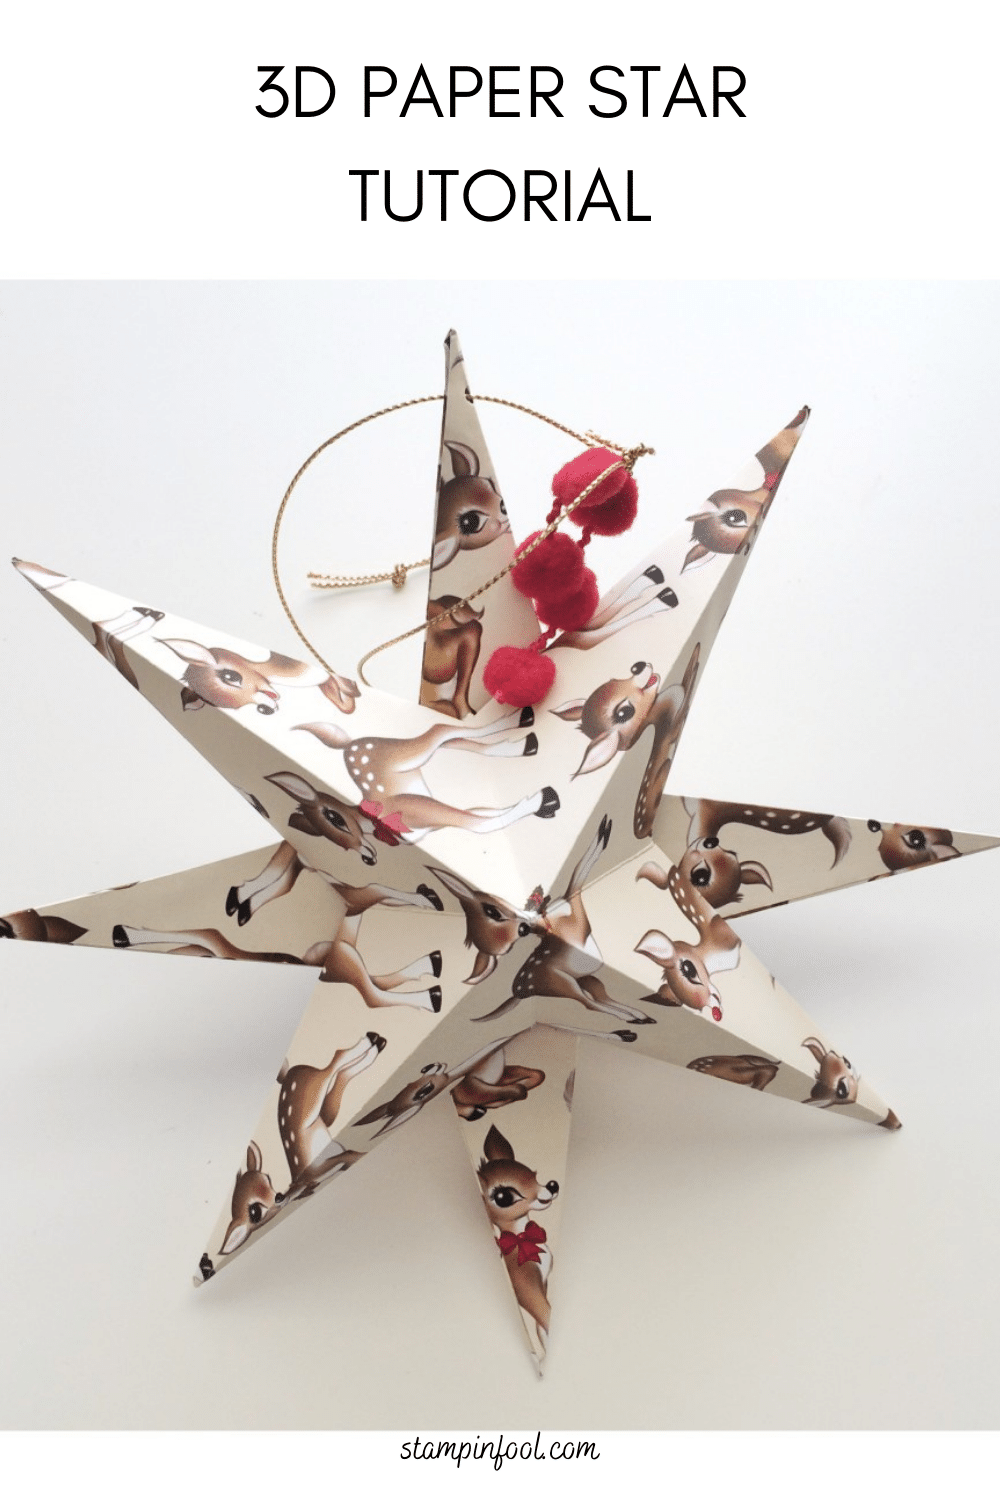 Step by step: How to Make a 3D Paper Star Christmas Ornament Craft